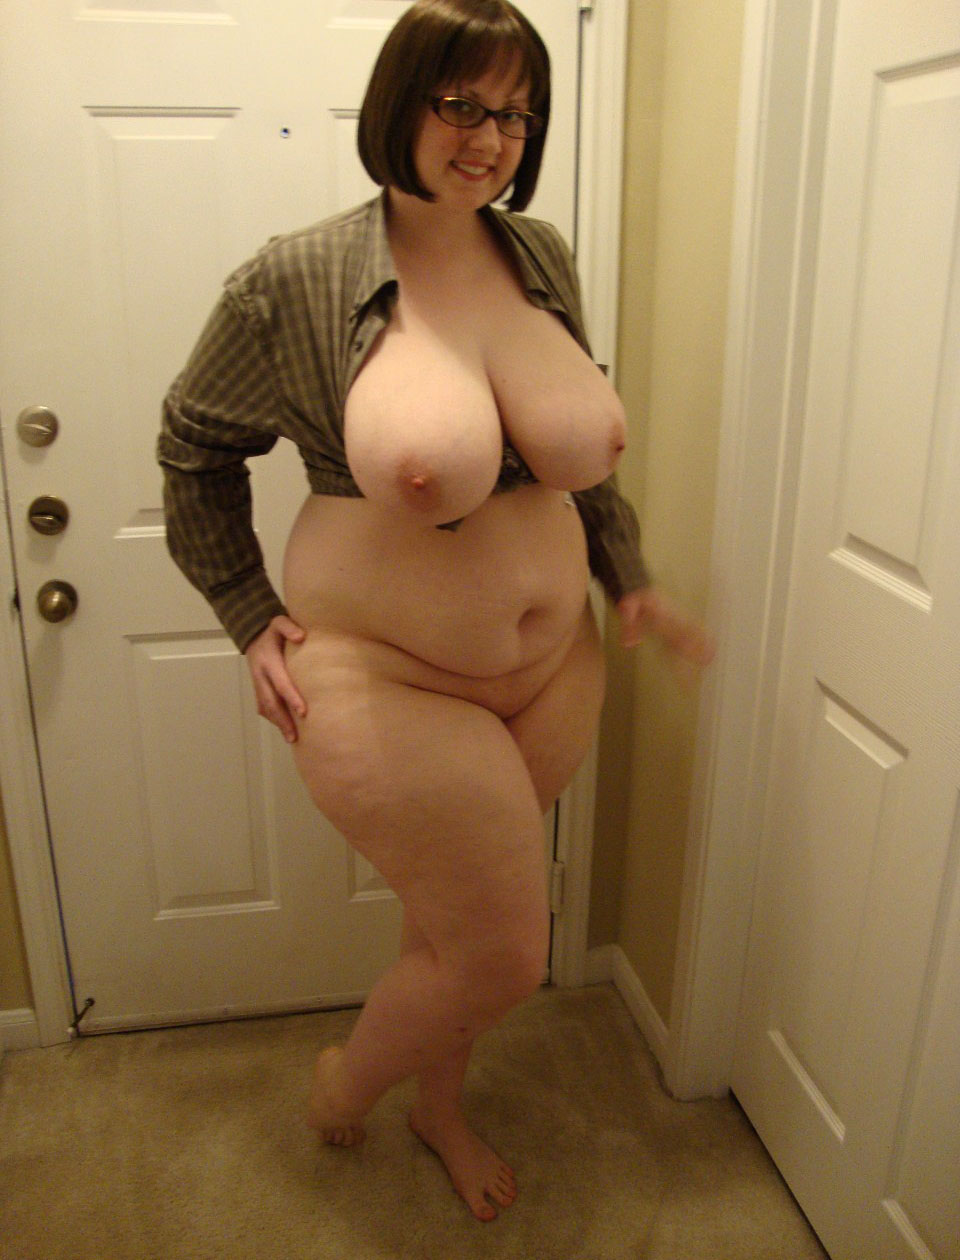 Bbw asian girl nude liked